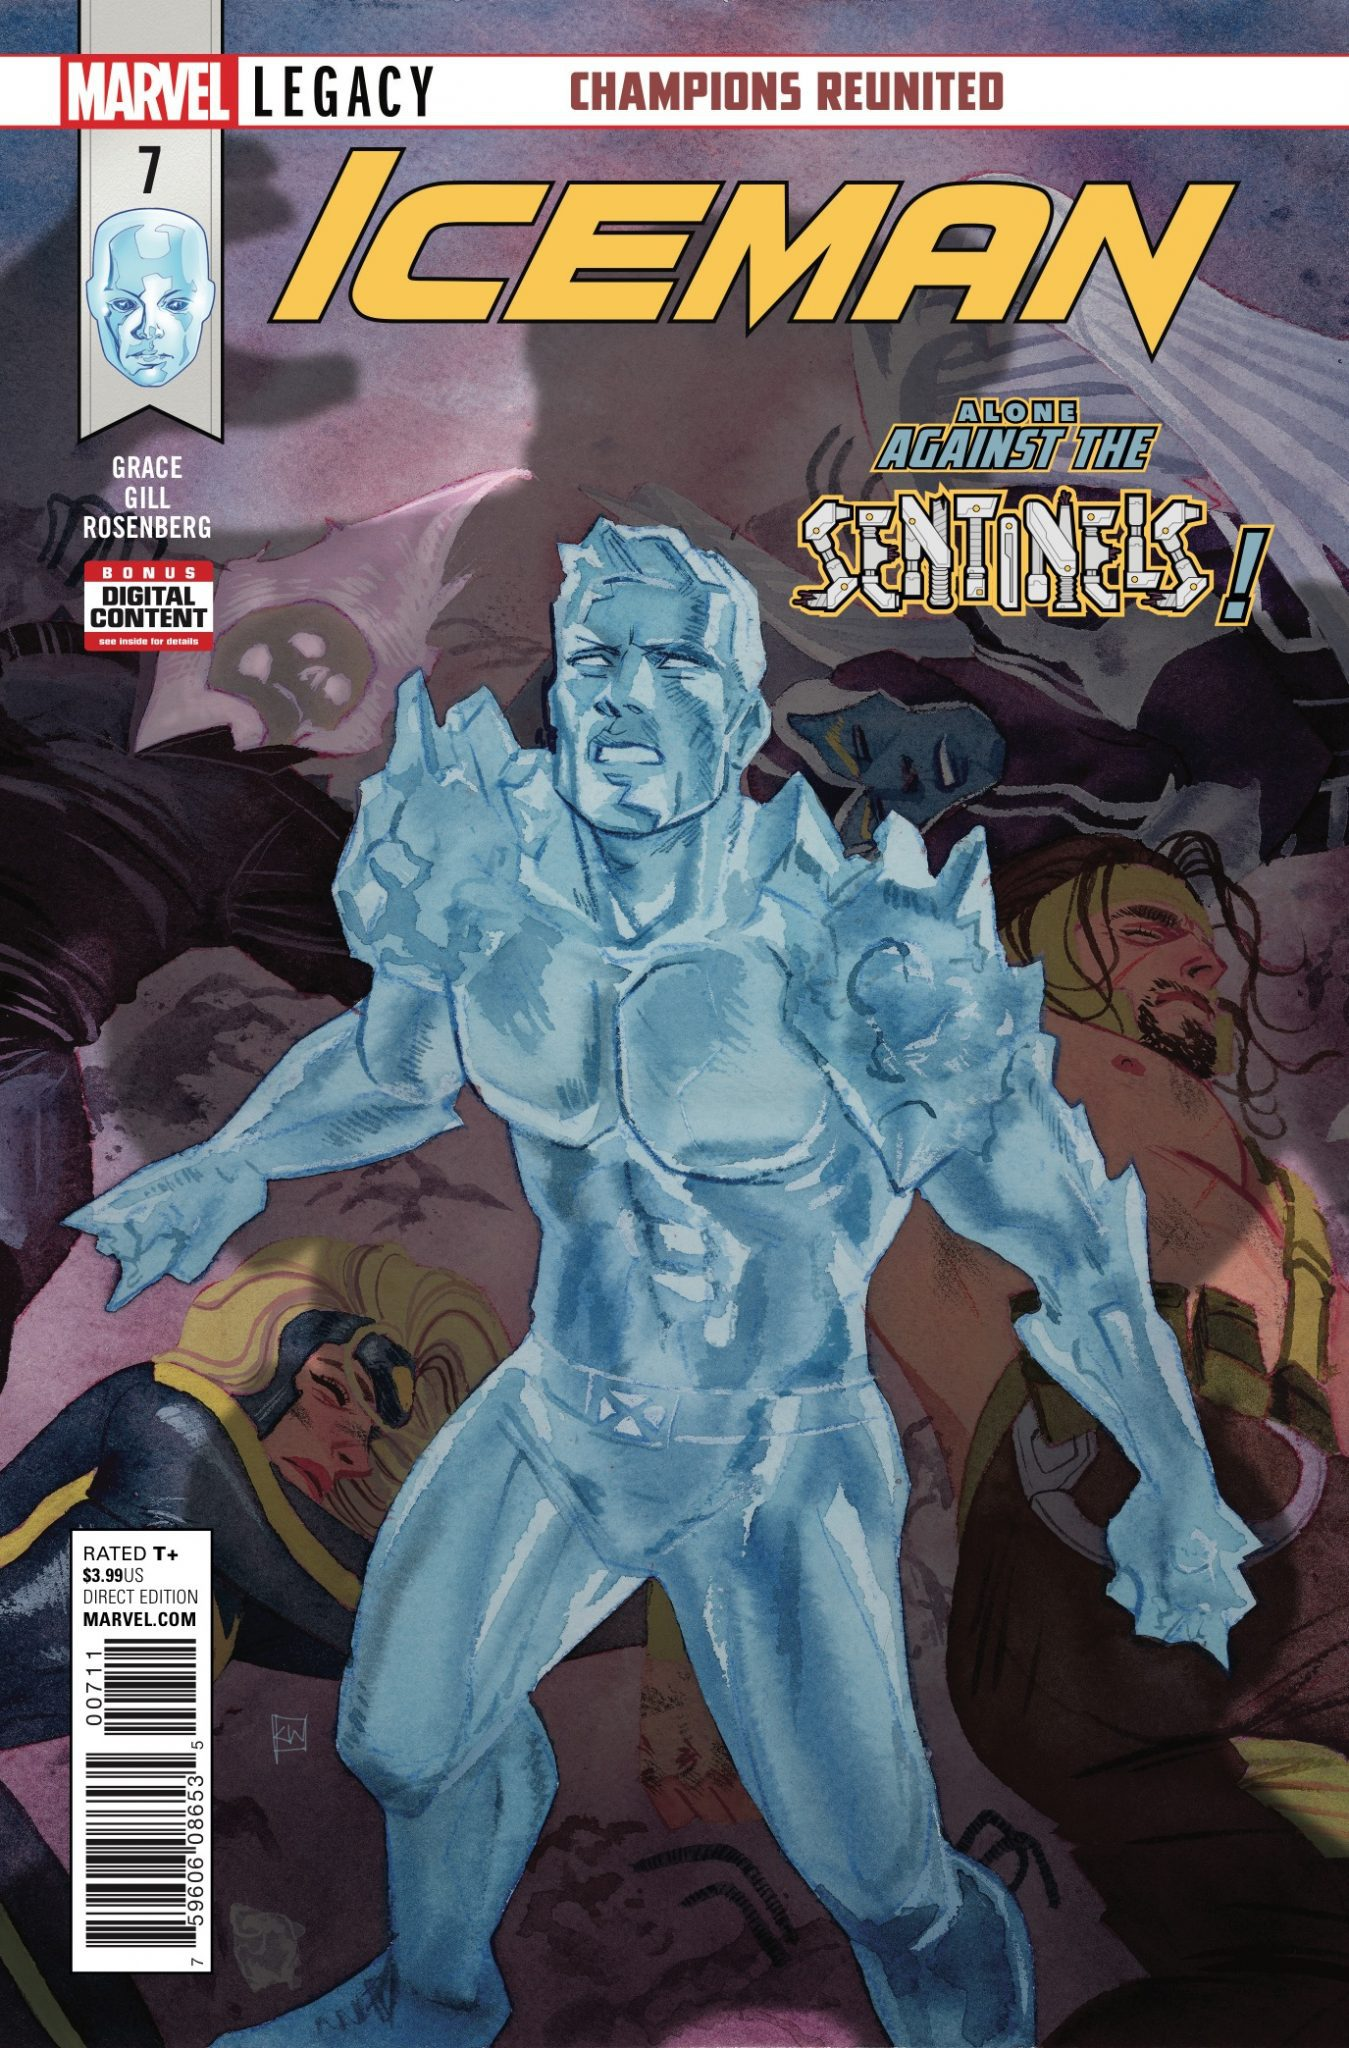 Iceman #7 Review